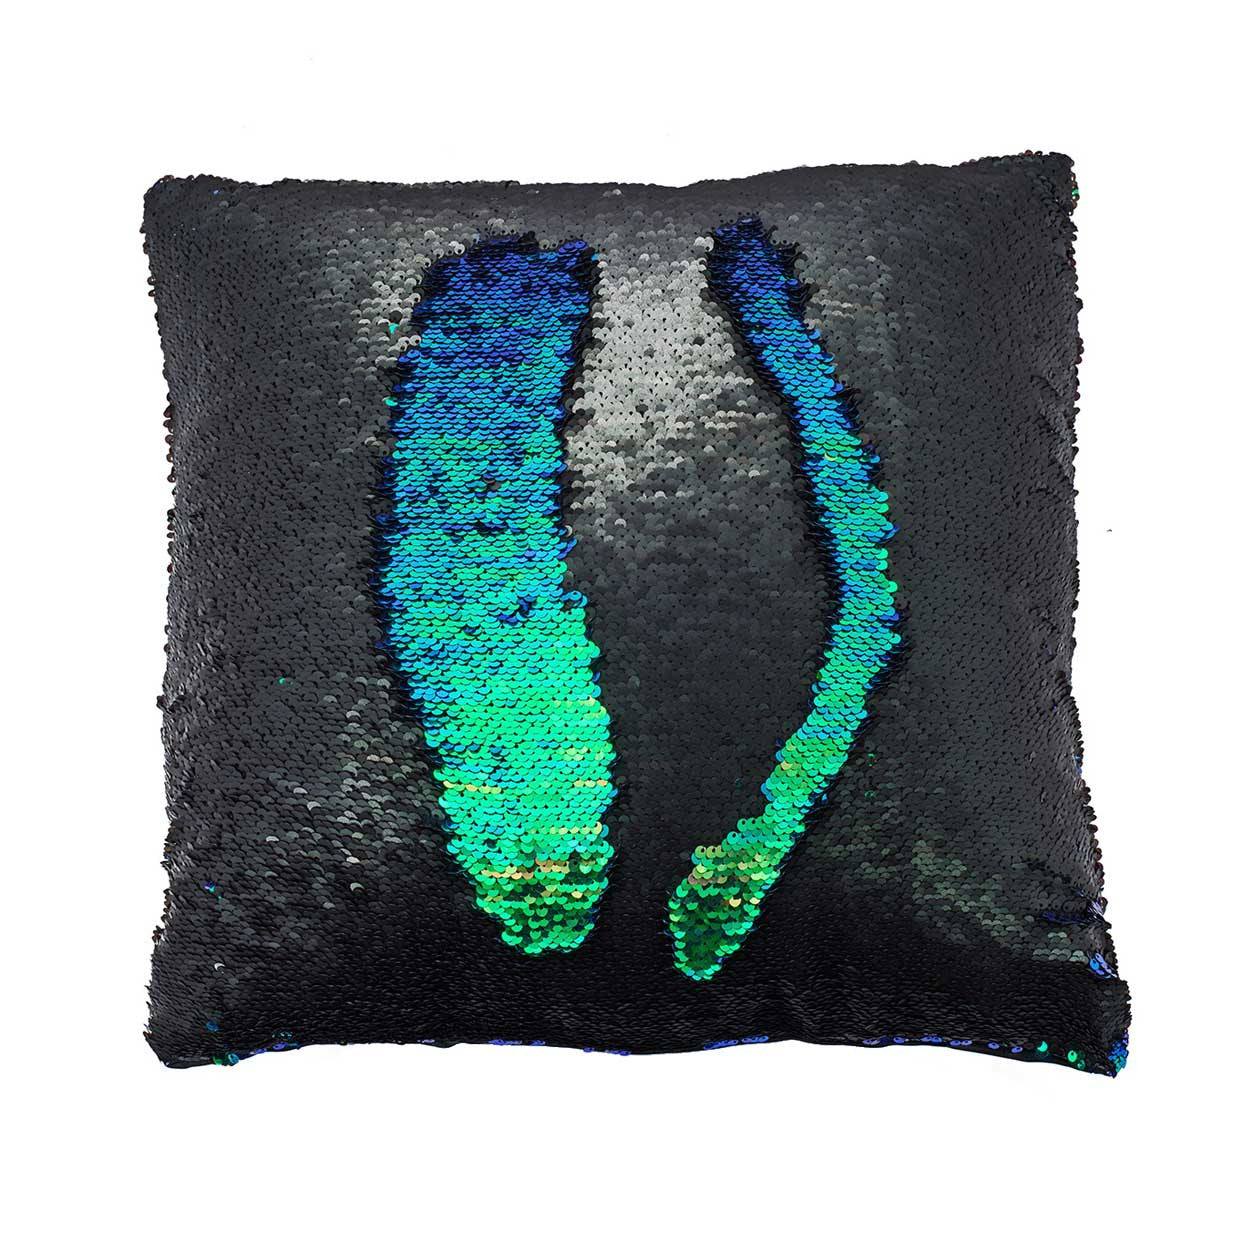 mermaid pillow sequin covered color changing in black and green - Color Changing Pillow